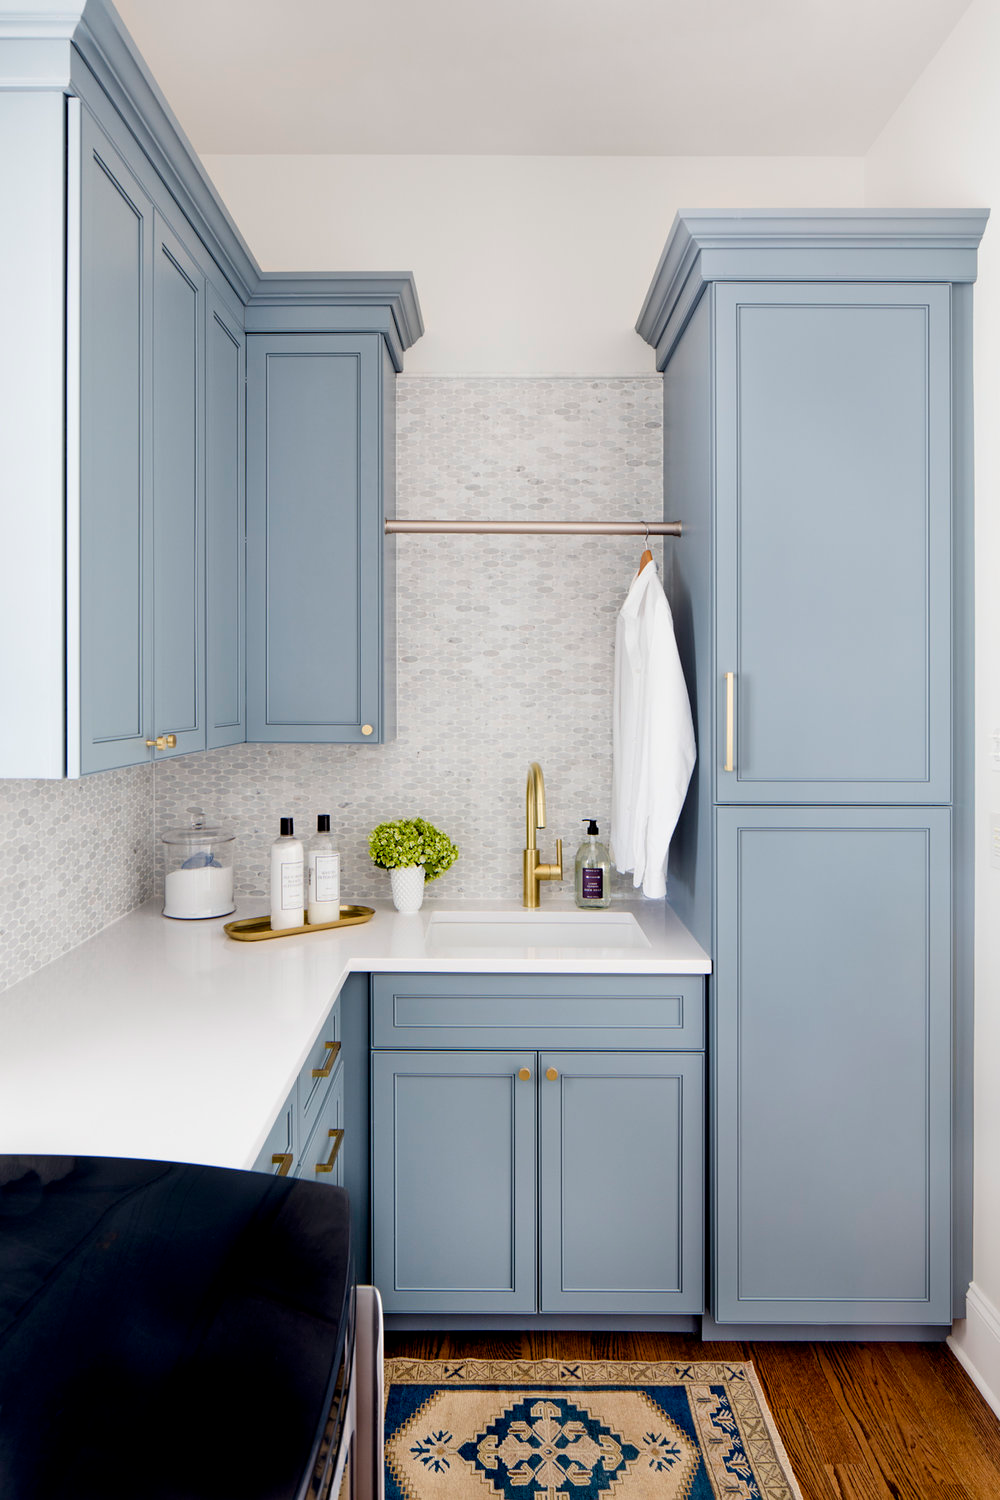 Most Popular Benjamin Moore Paint Colors In 2020 Grey Laundry Rooms Light Blue Kitchens Blue Cabinets